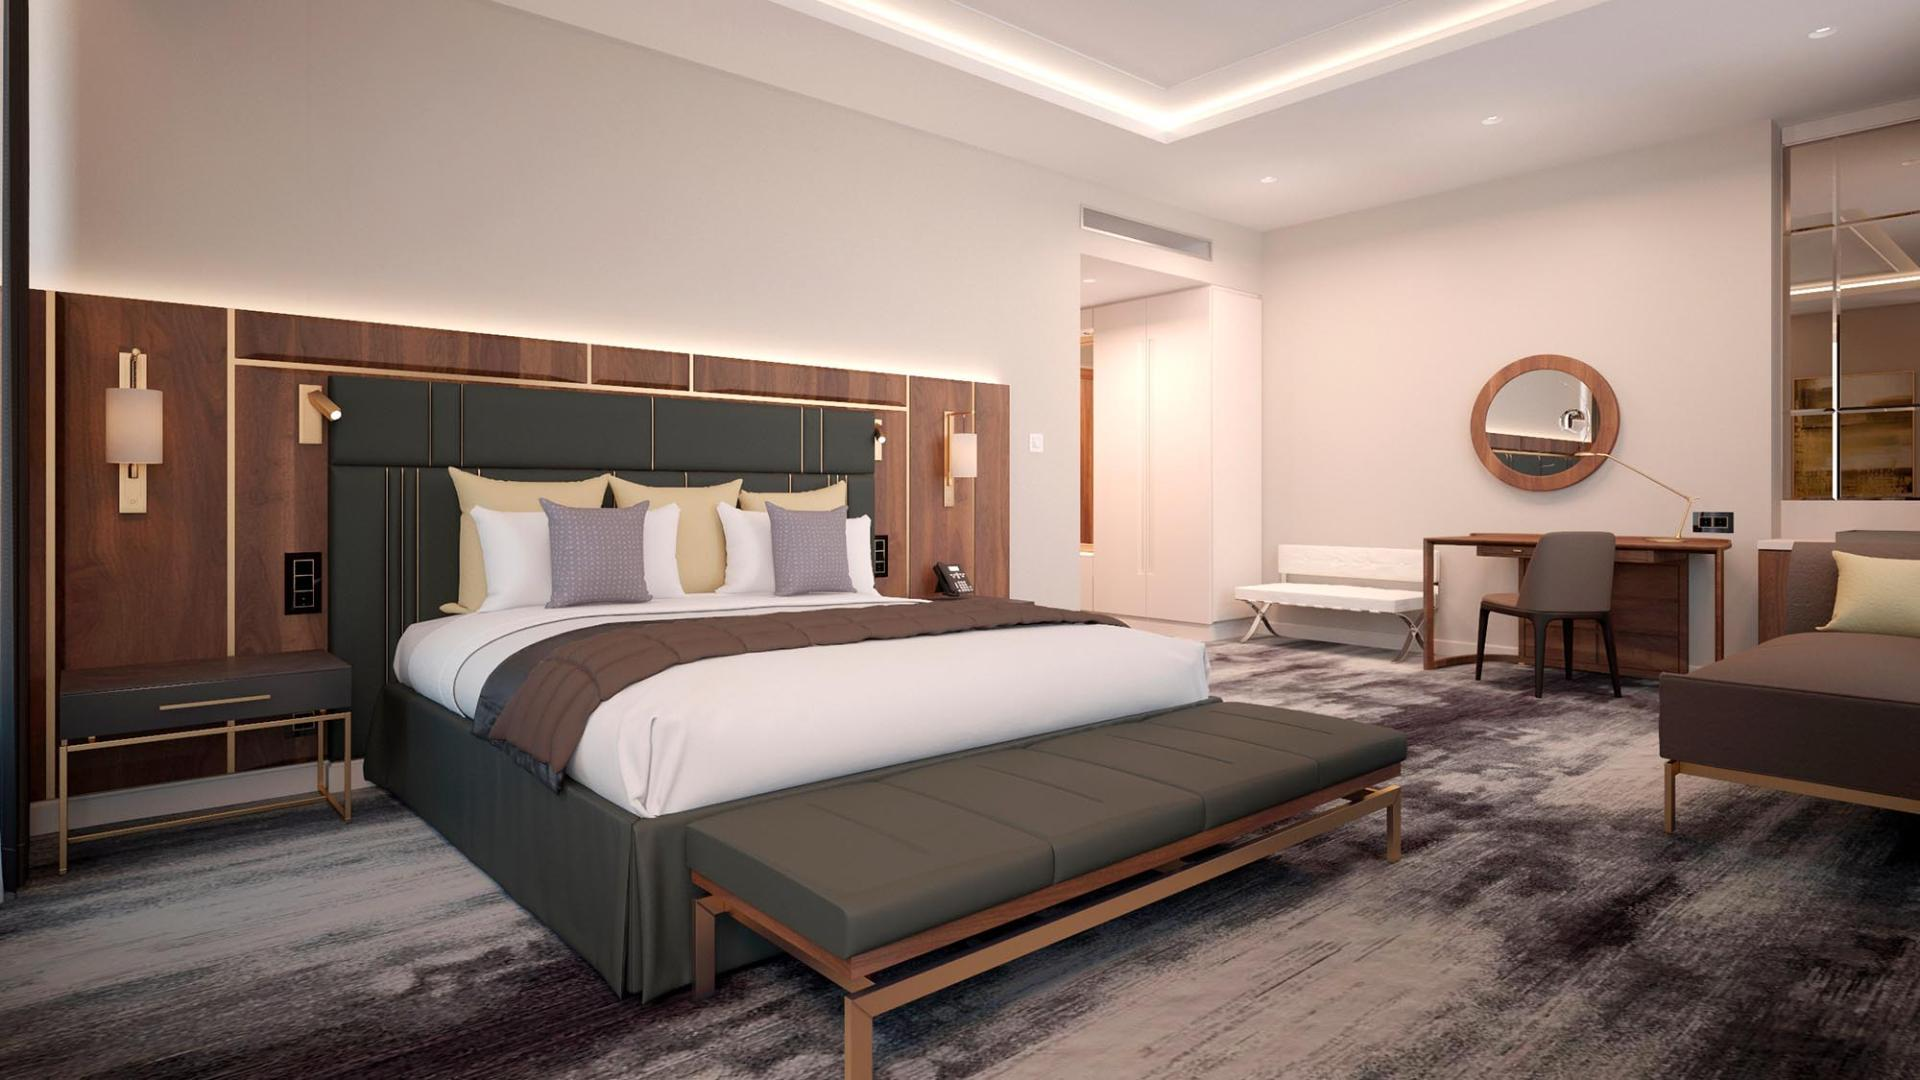 Lotte Hotel Samara - Rooms - Suite